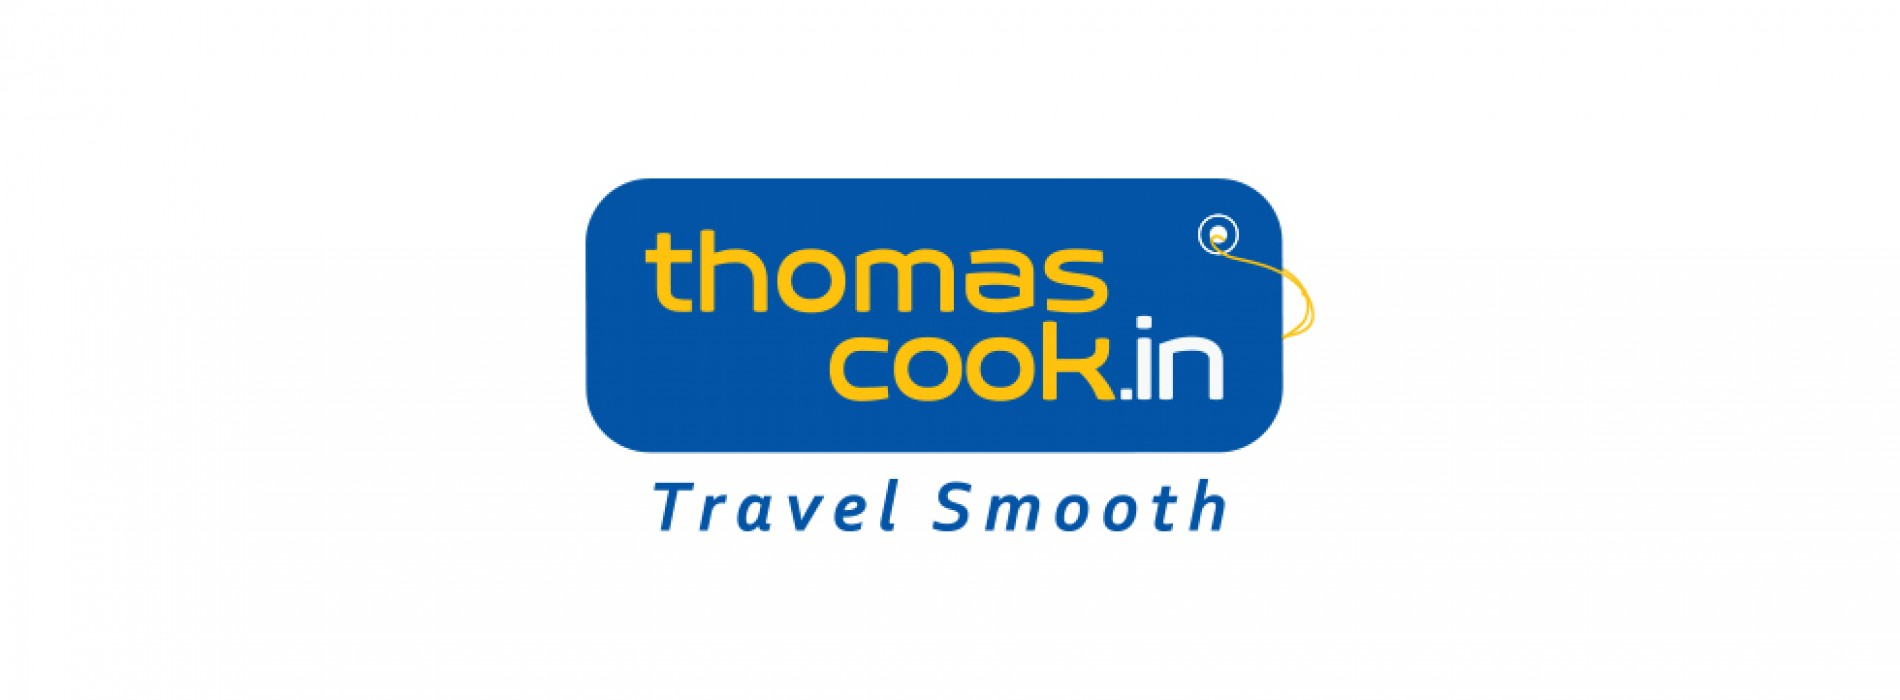 Thomas Cook India targets Middle India's high growth Honeymoon Travel Market